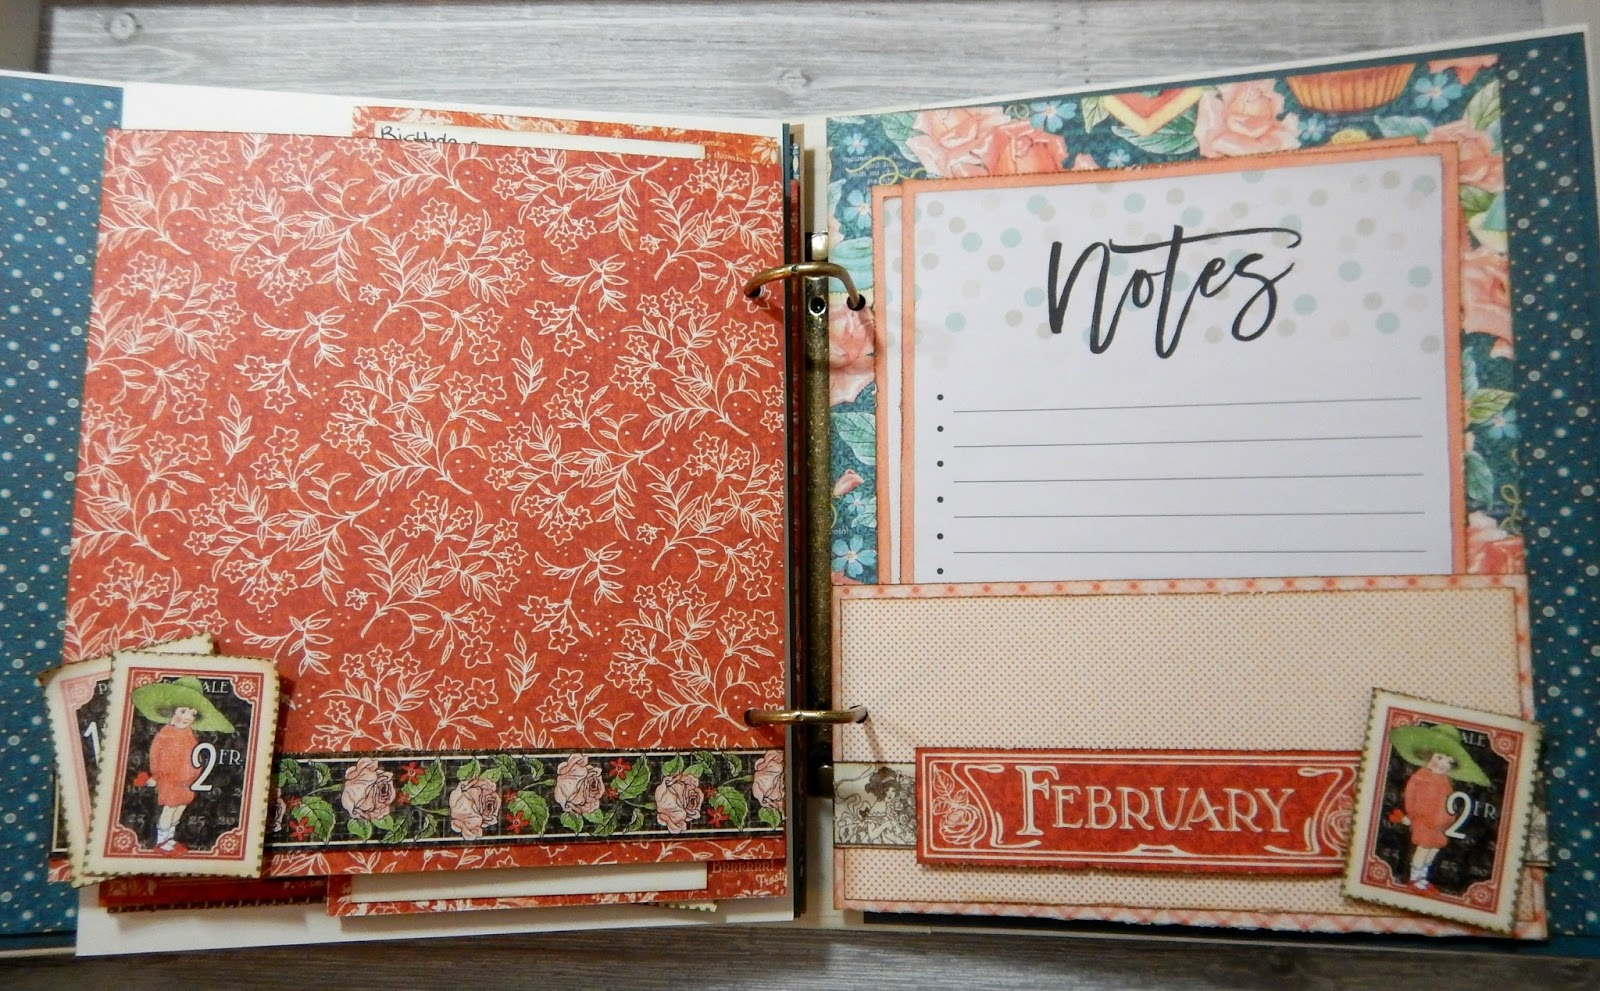 How to delete scrapbook photos google+ - This Is Just A Few Of The Photos Of The Inside Of My Planner To See More Pictures Of My 2017 Scrapbook Planner You Ll Want To Head Over To The Graphic 45